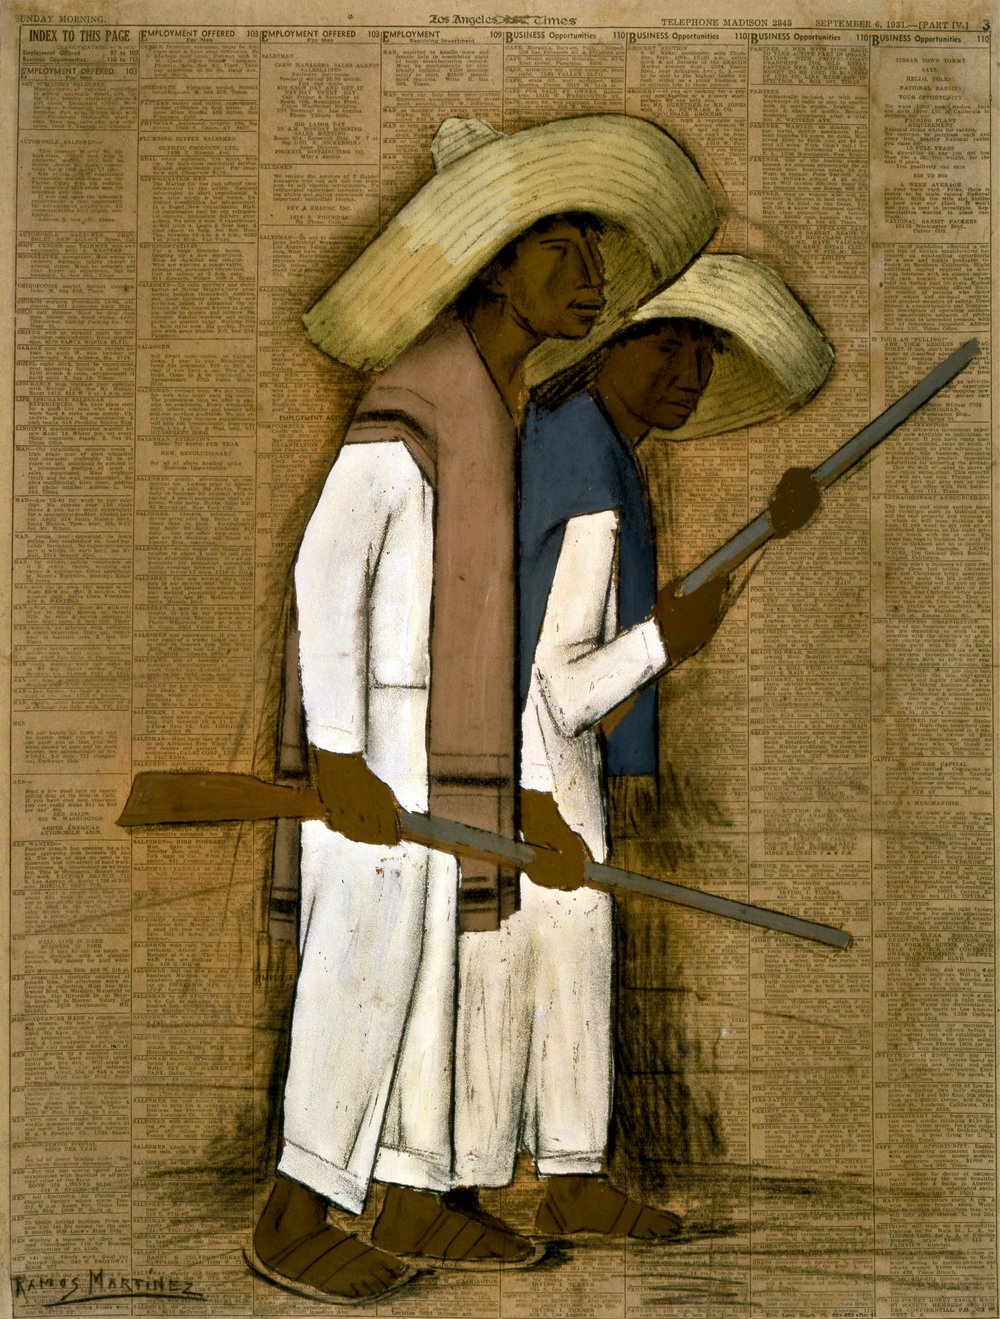 Dos Hombres con Fusiles / Two Men with Rifles  1931 gouache on newsprint / aquada sobre papel periódico ( Los Angeles Times , September 6, 1931) 21.8 x 16.3 inches; 55.3 x 41.3 centímetros